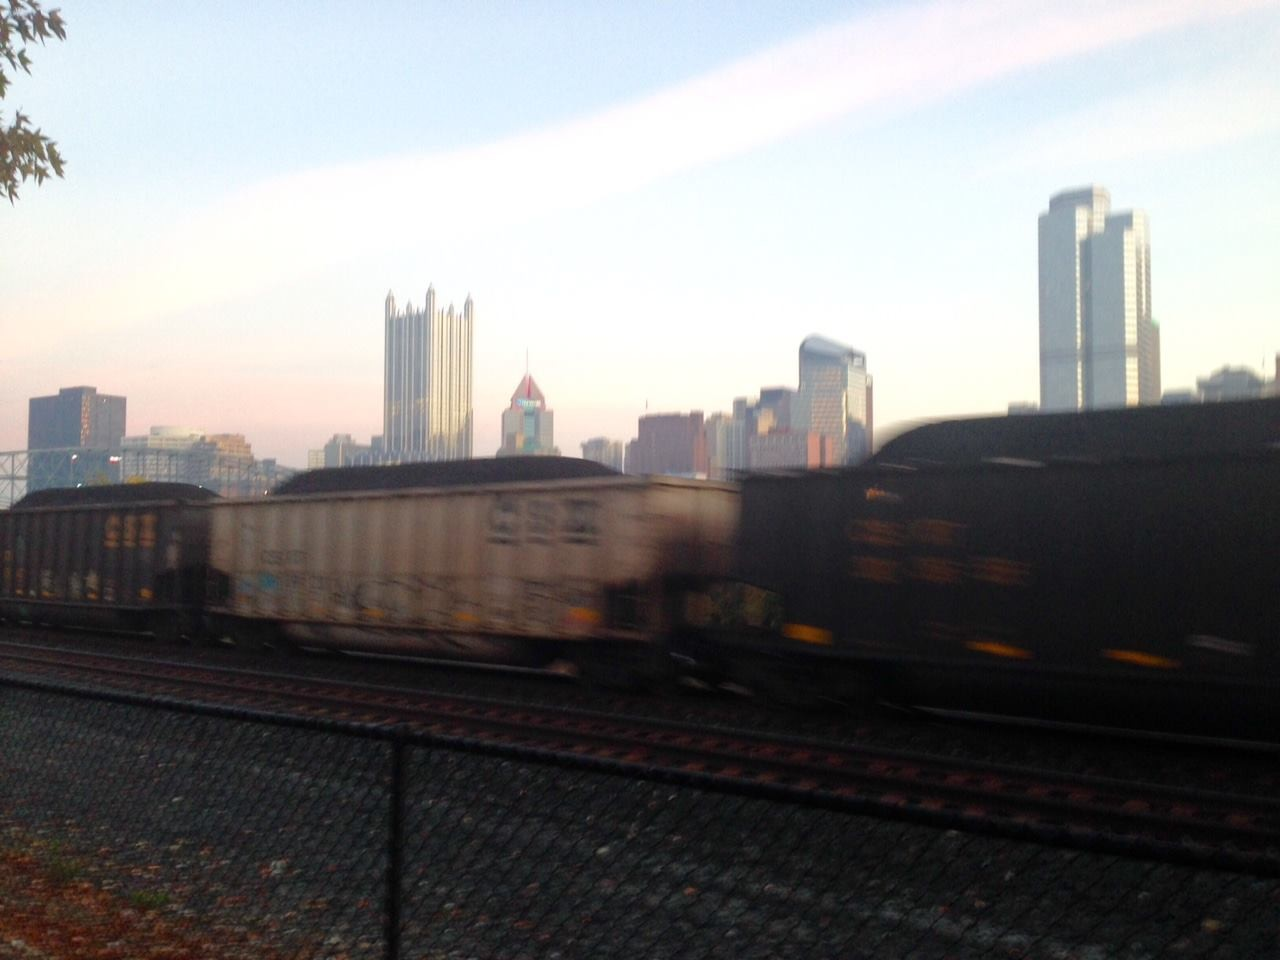 Coal has long defined the Pittsburgh region. Above, a coal train rumbles by, across the Monongahela from the downtown.